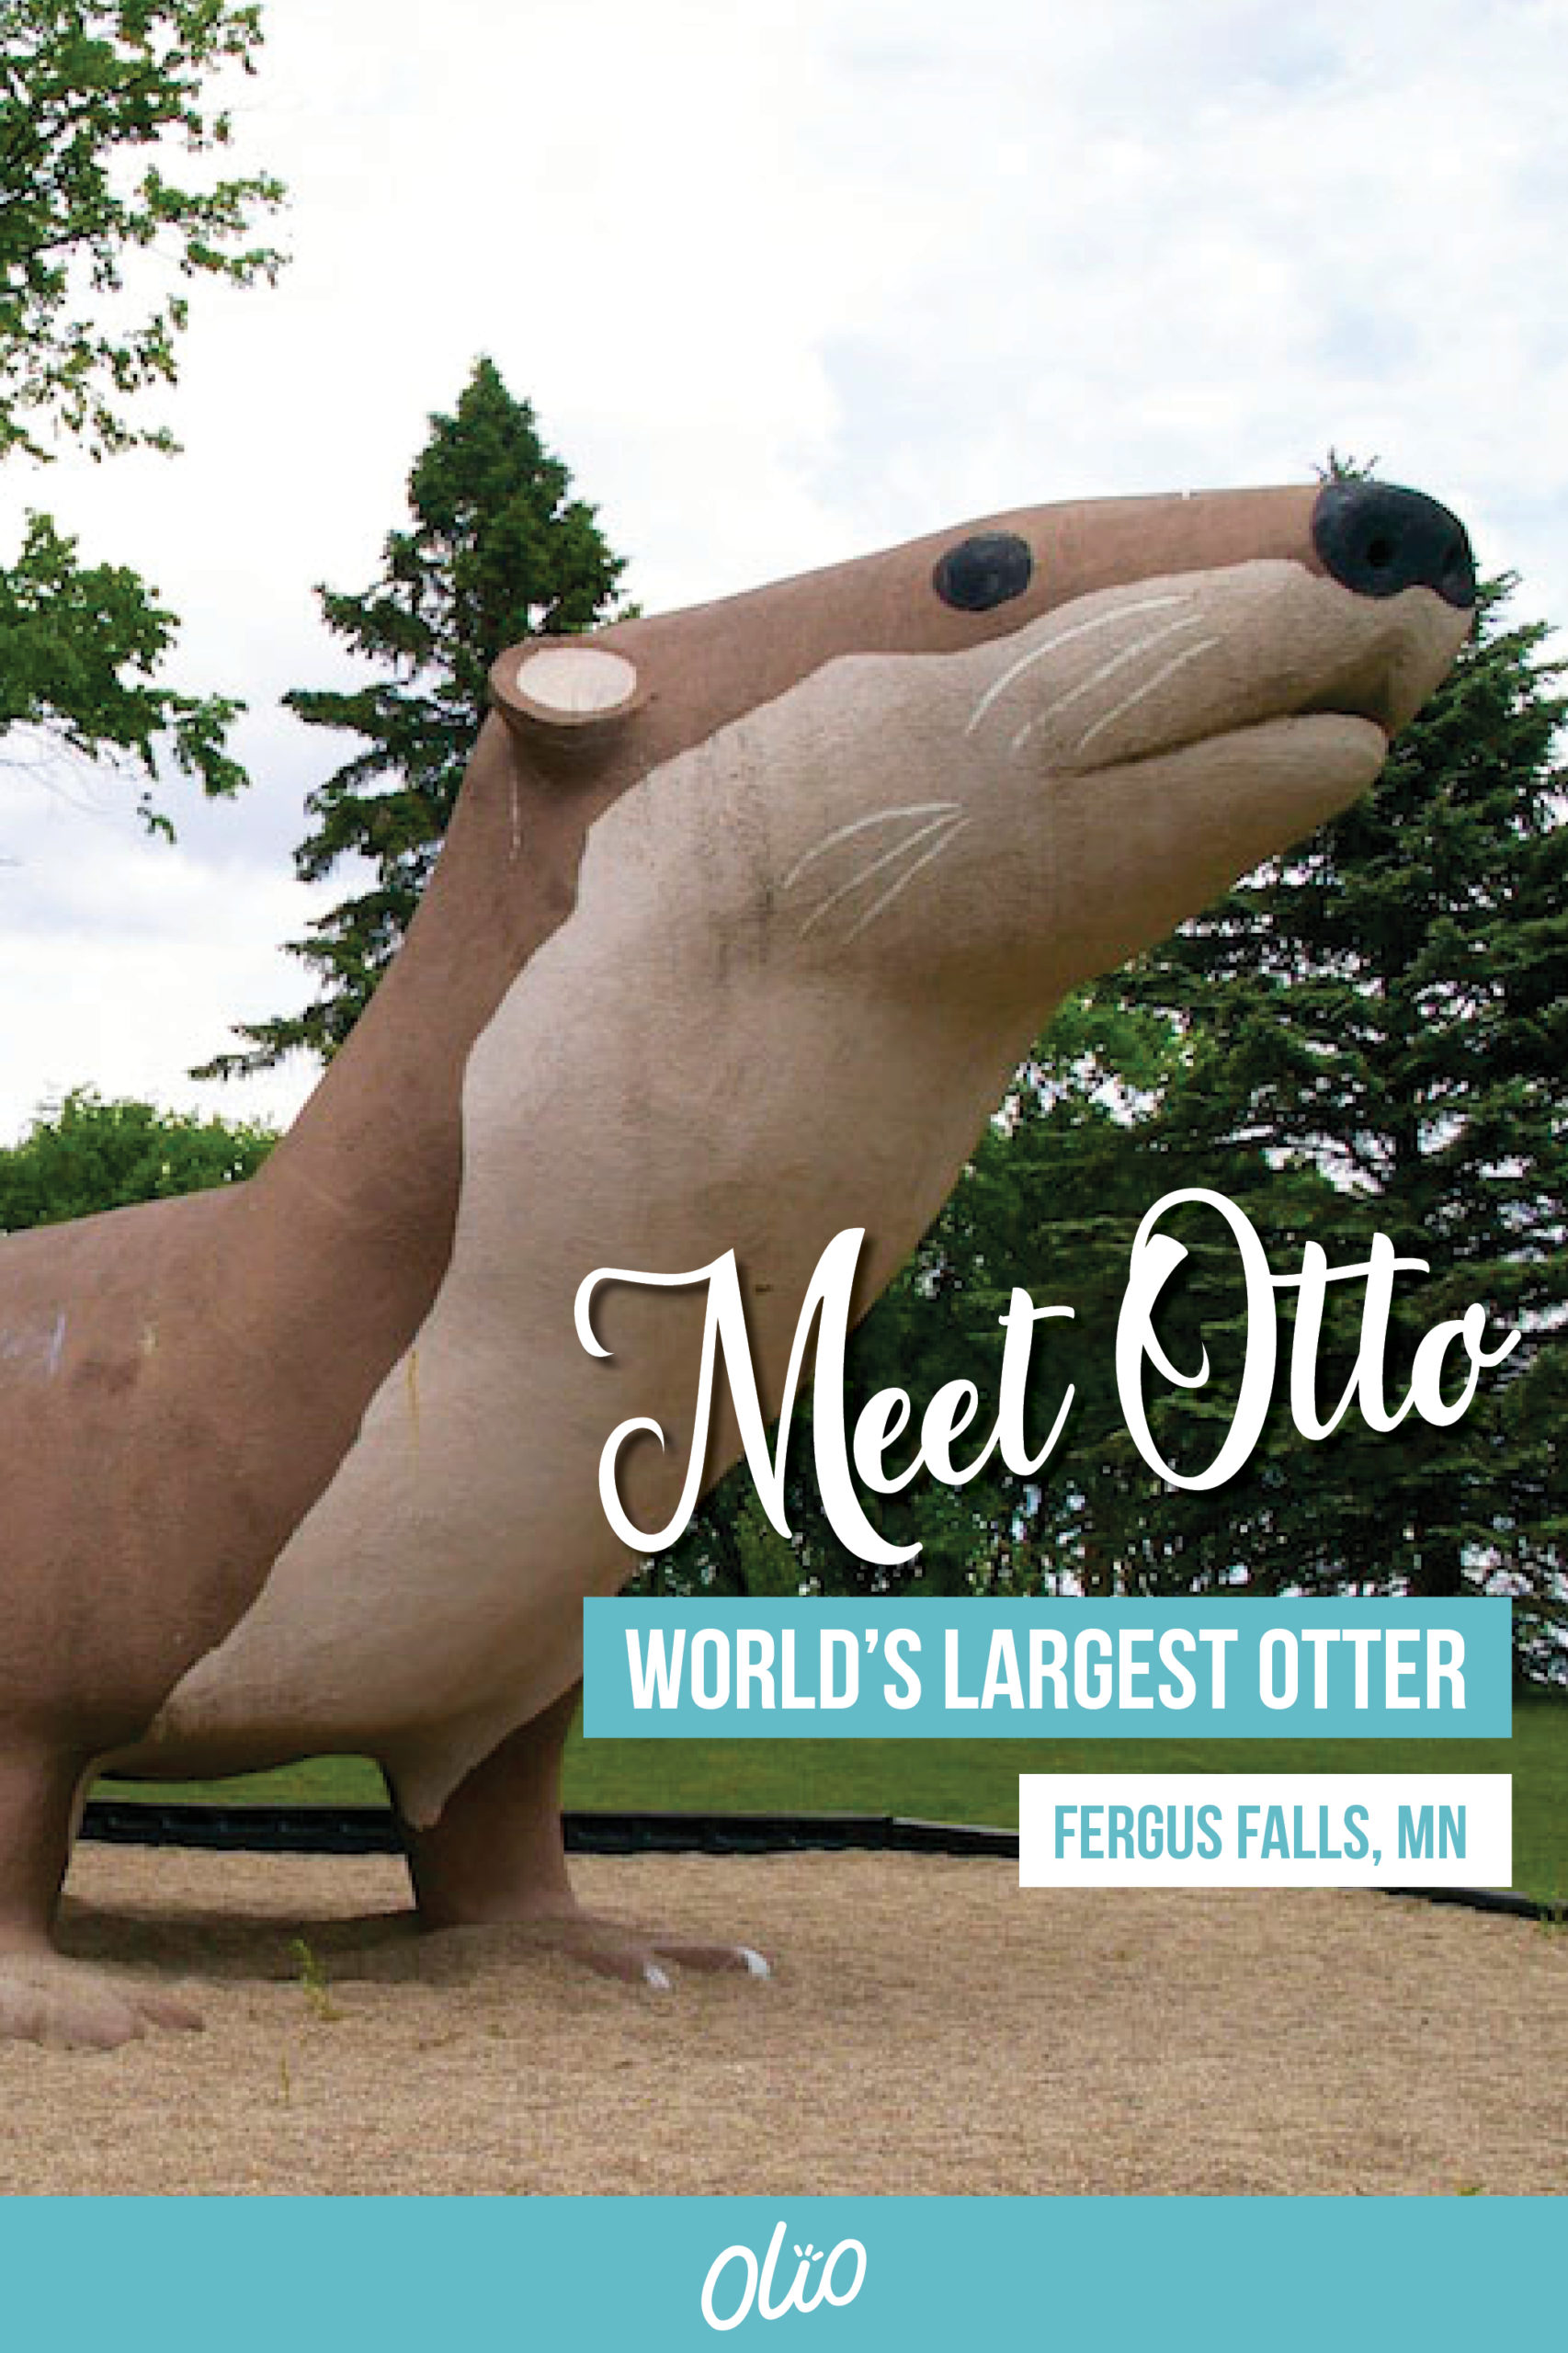 Meet Otto the World's Largest Otter who makes his home in Fergus Falls, Minnesota! Minnesota is full of roadside attractions and unique destinations, including Otto the Otter. #Minnesota #WorldsLargest #RoadsideAttractions